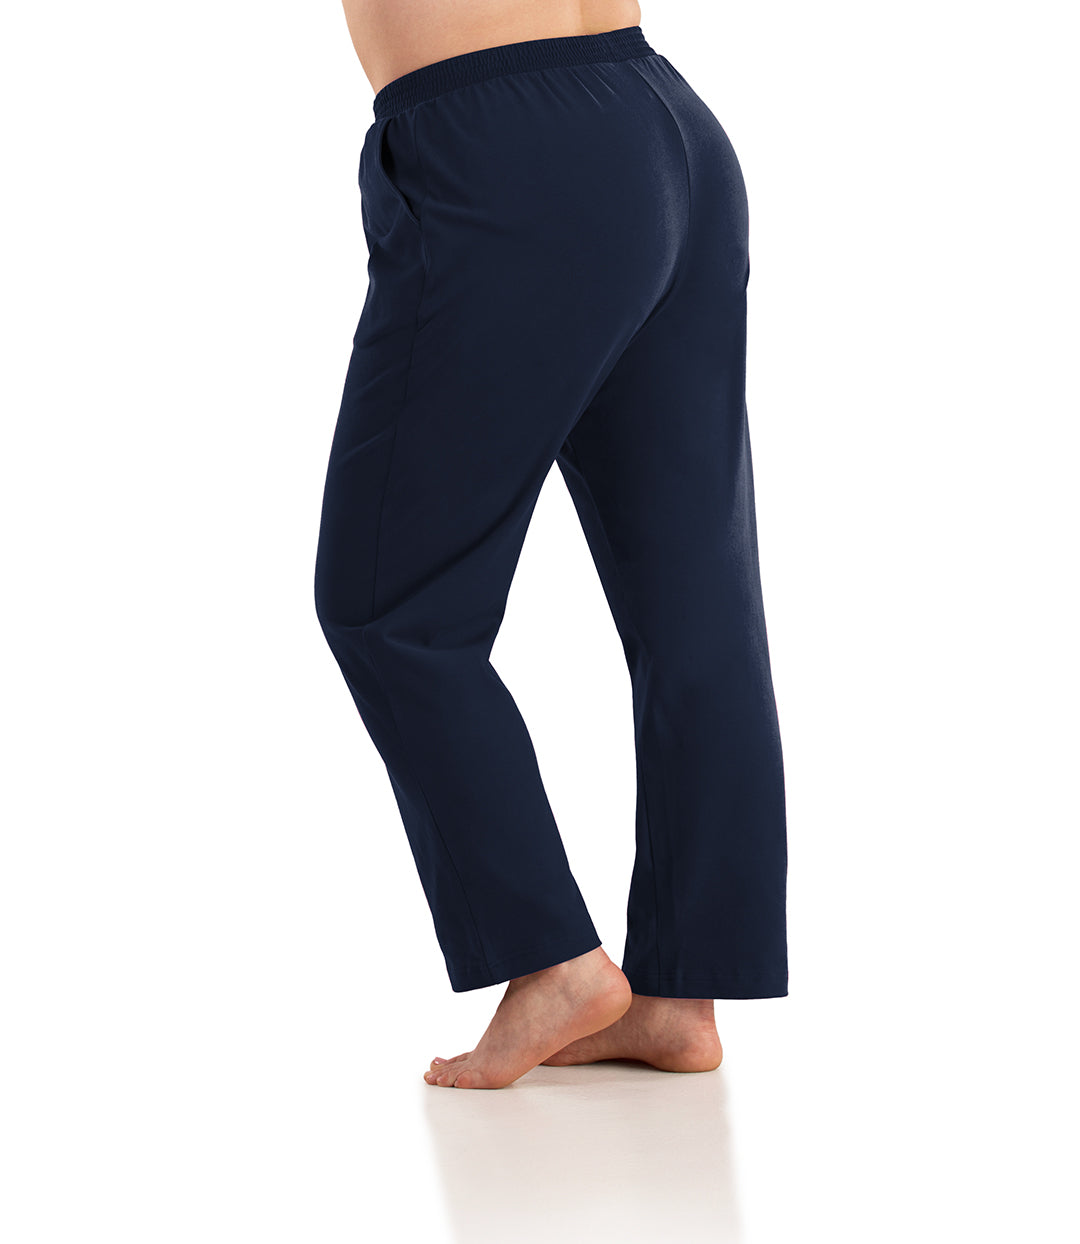 Seashell™ Cotton Casual Pant with Pockets-Plus Size Activewear & Athletic Clothing-Hop Wo Trading Co Ltd-XL-Average-Navy Blue-JunoActive